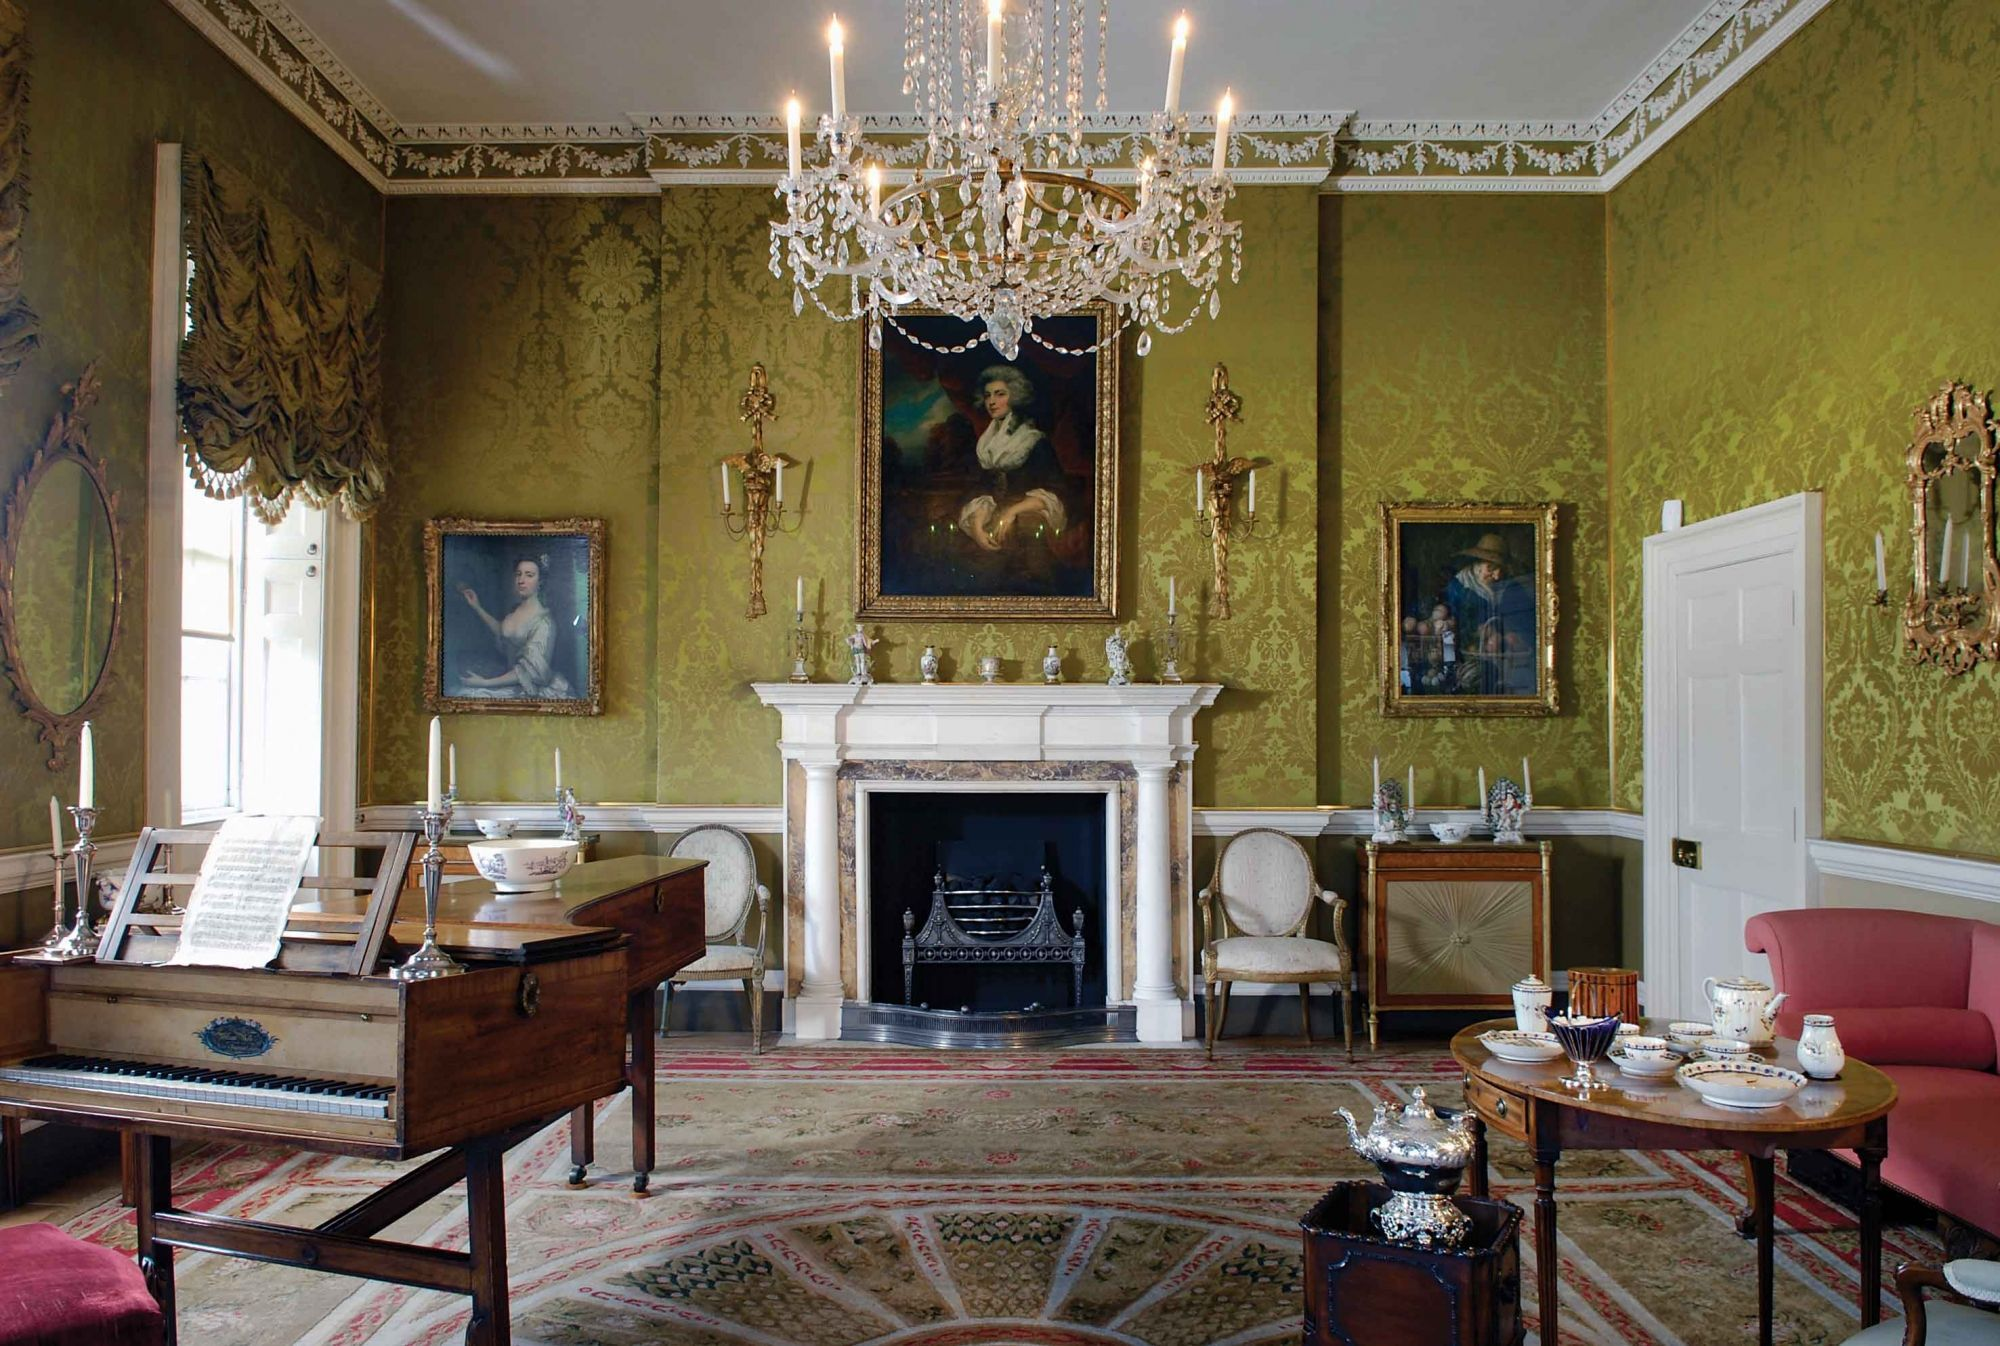 Bath's best museums - No. 1 The Royal Crescent takes you back to the Georgian era